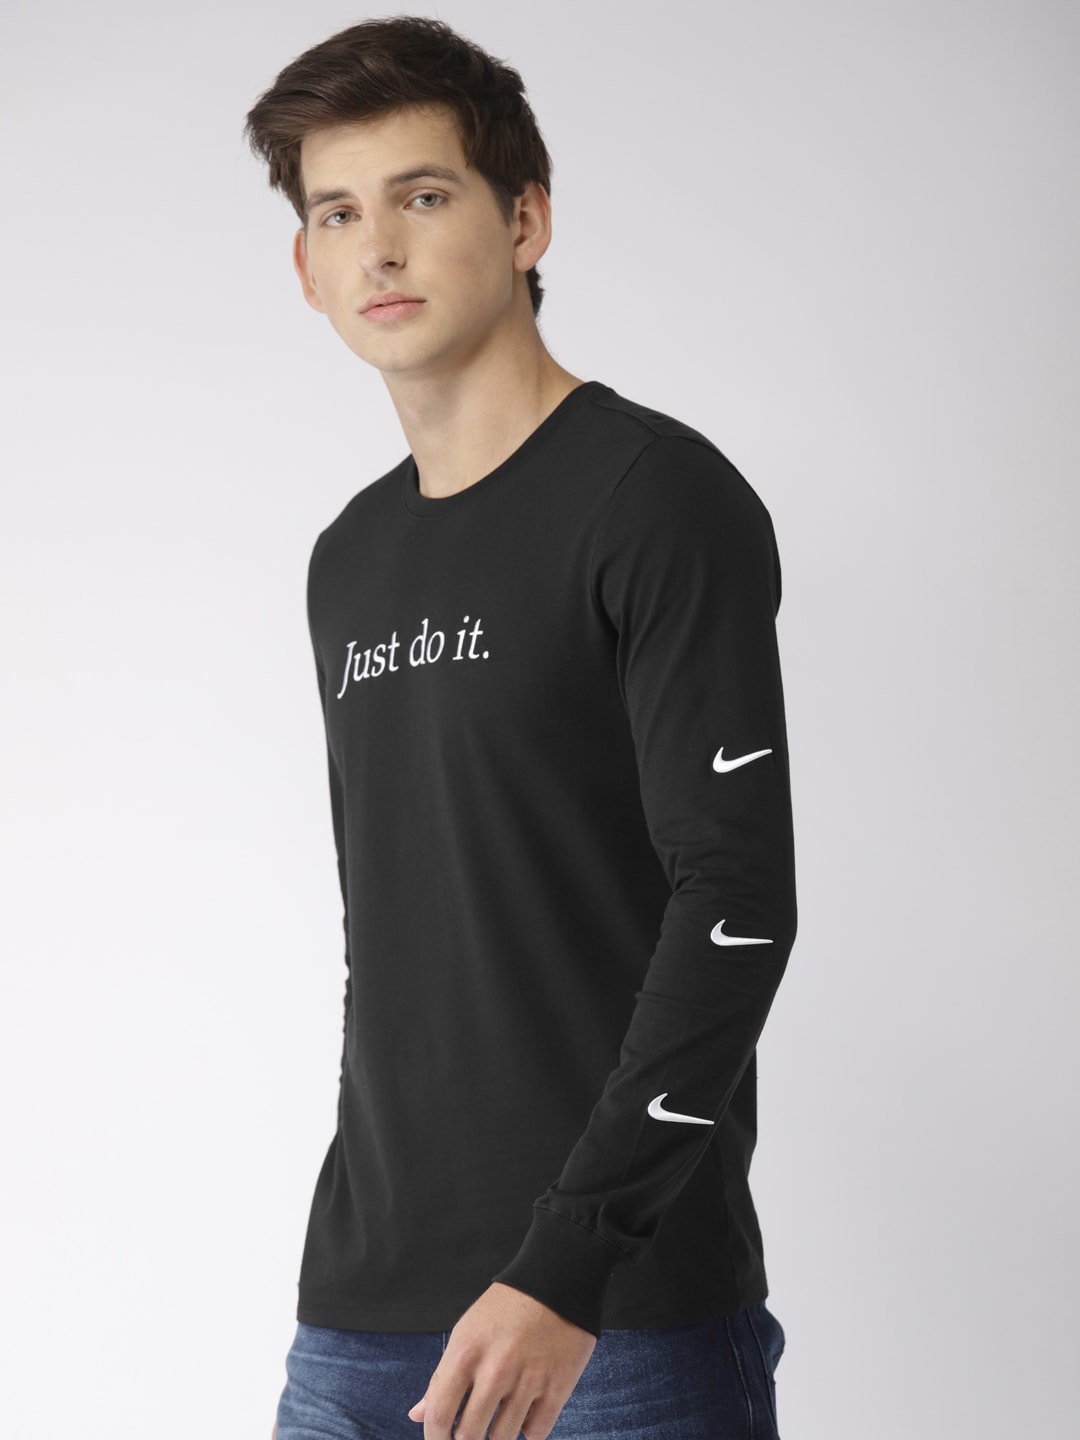 254565619522 Nike Long Sleeve Tshirts - Buy Nike Long Sleeve T Shirts For Men   Women